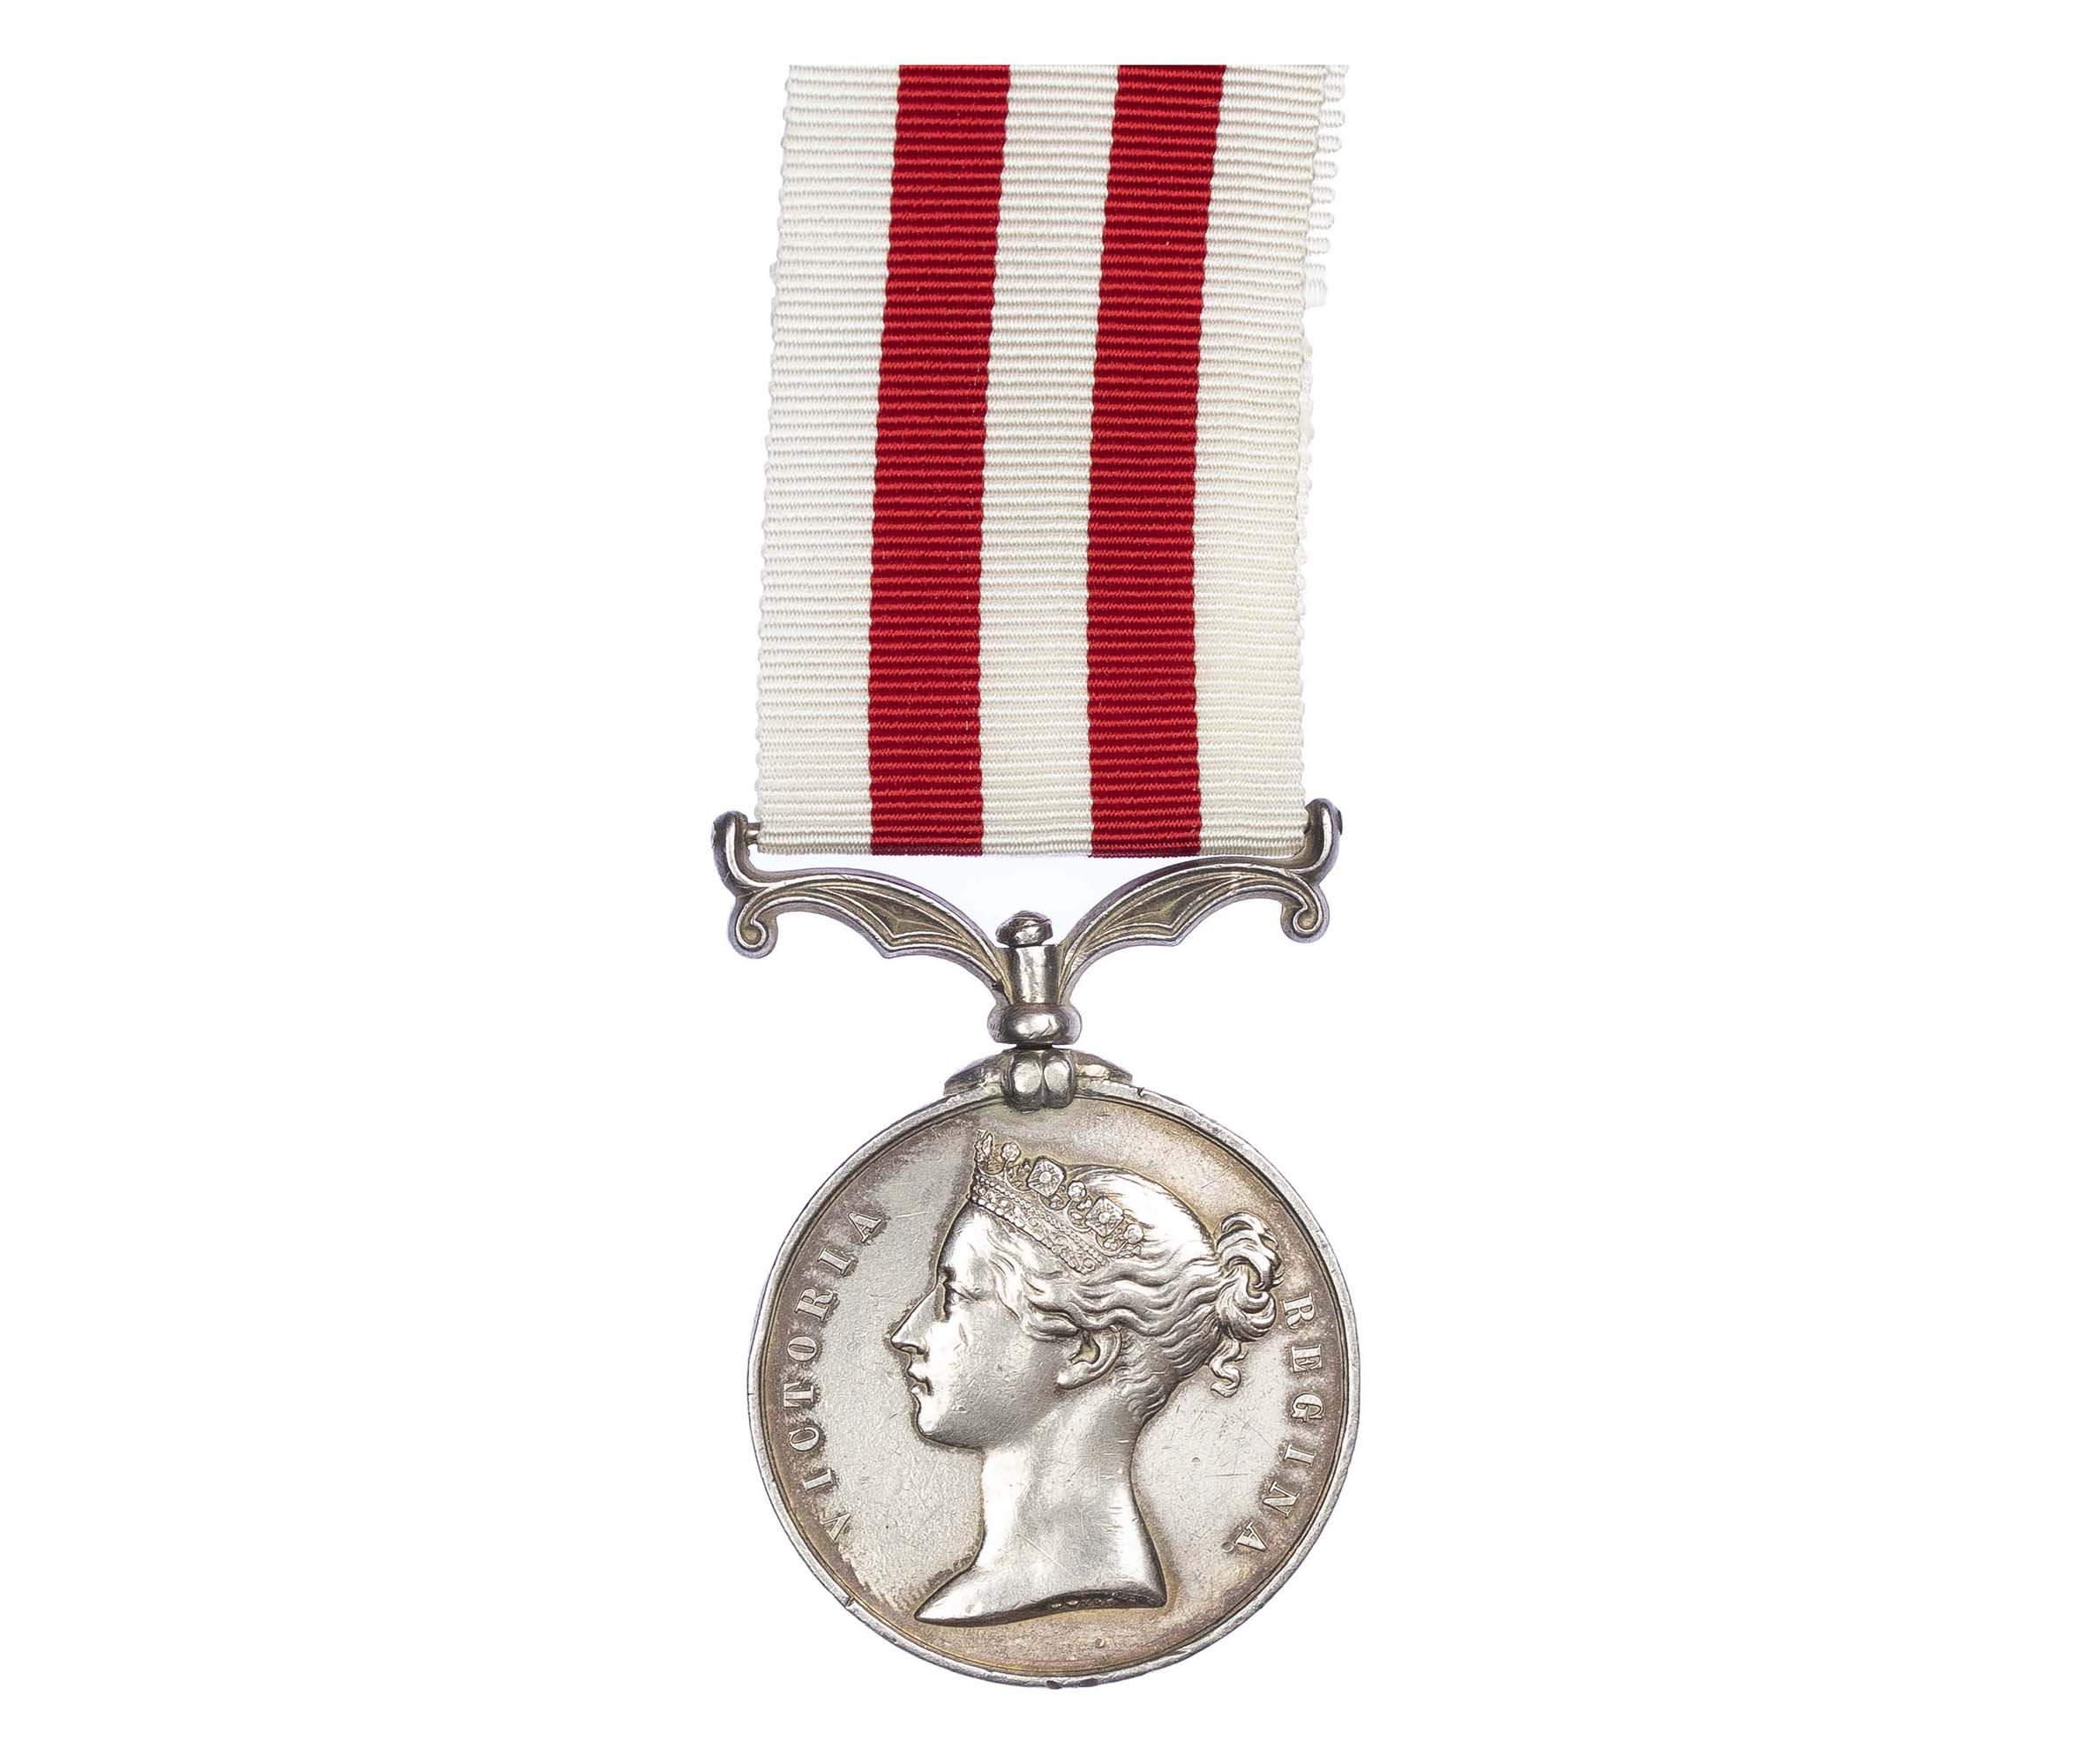 Indian Mutiny Medal, no clasp, to Joseph Hethers